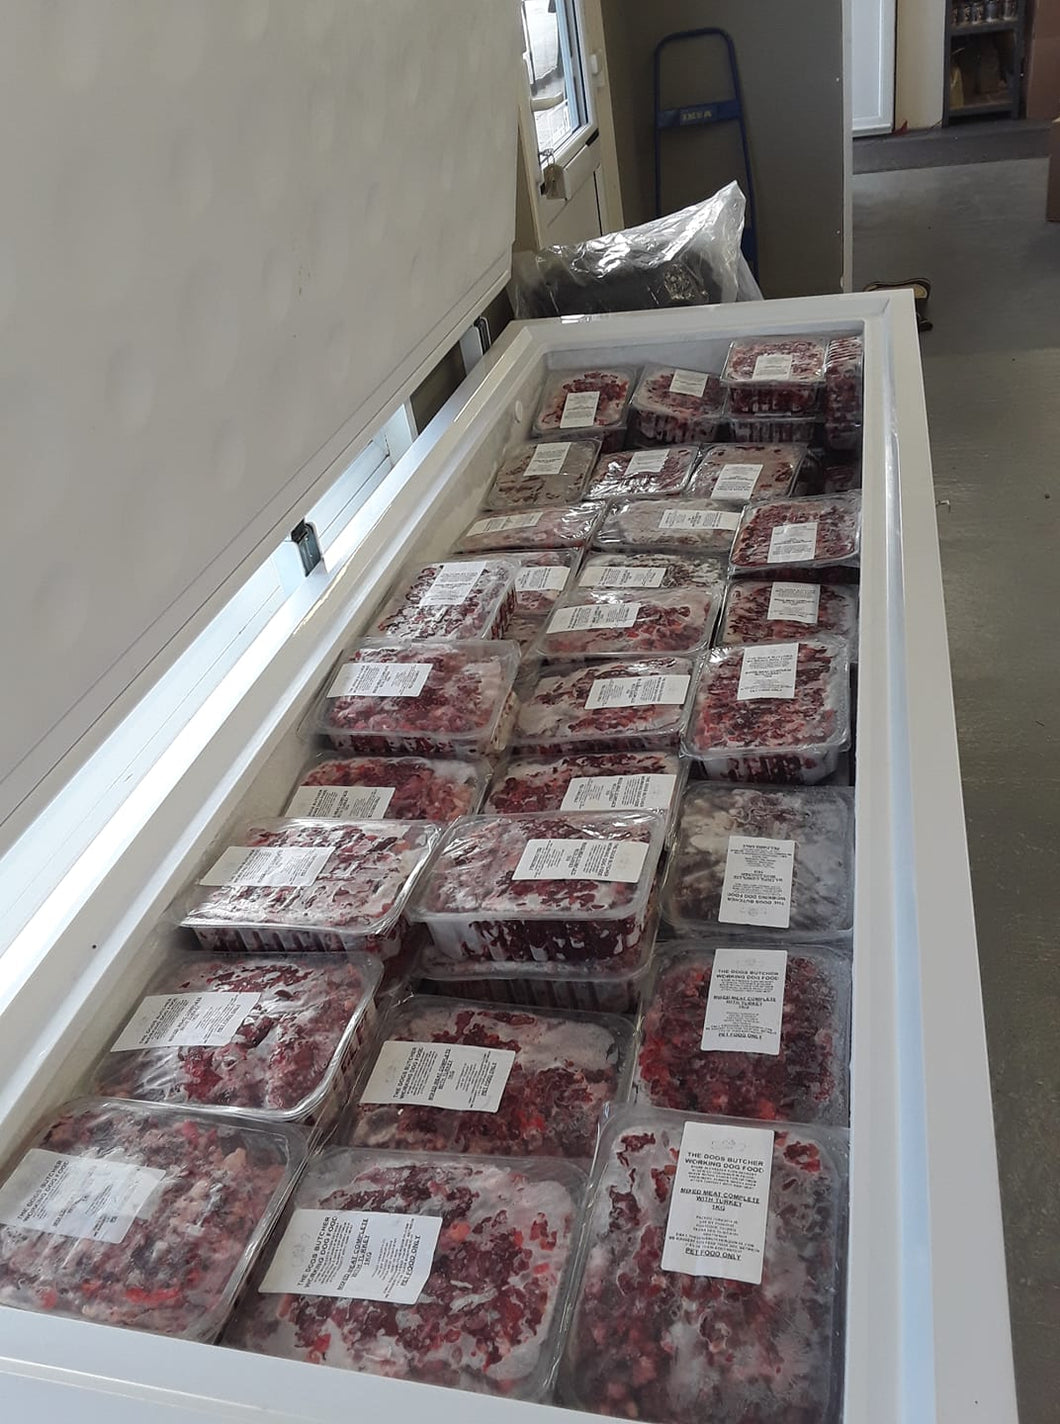 The Dog's Butcher. Boar (pork) meat chunks 1kg